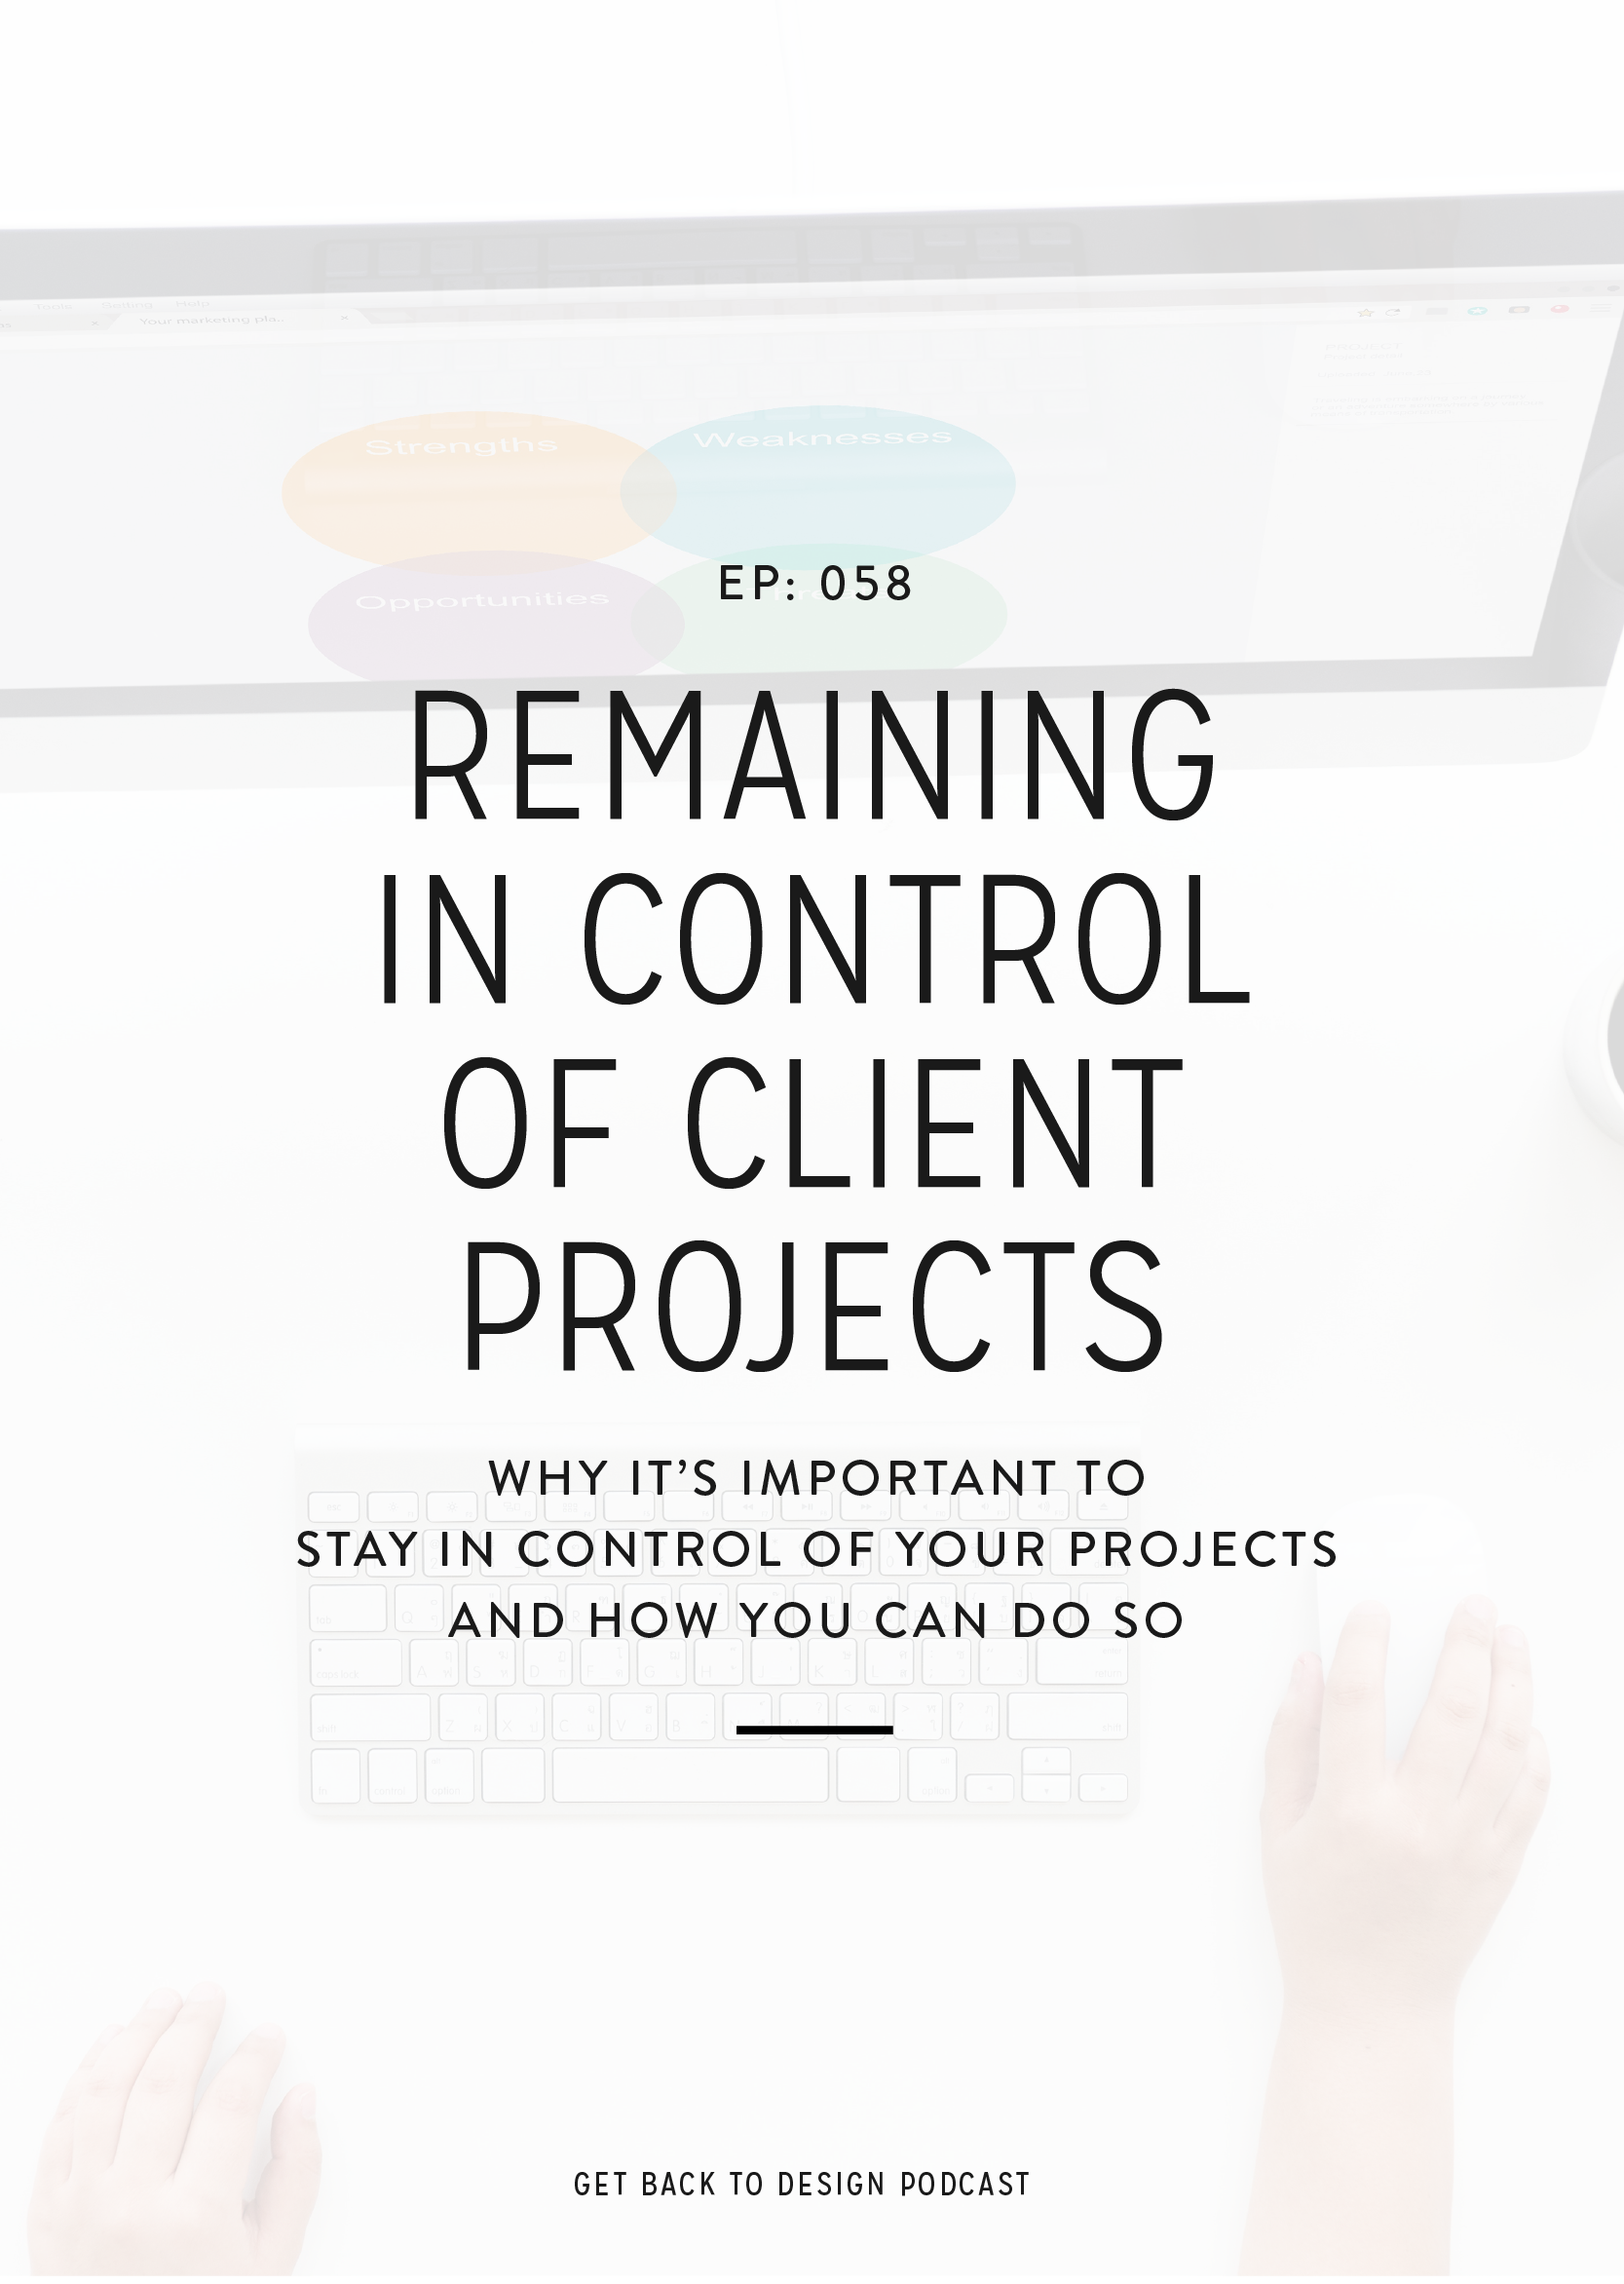 When starting out, it's common to let clients walk all over you or not know how to make them give you the guidance you need throughout projects. Since this is such a common struggle, today we'll go over why it's so important to stay in control of client projects and what steps you can take to do it.